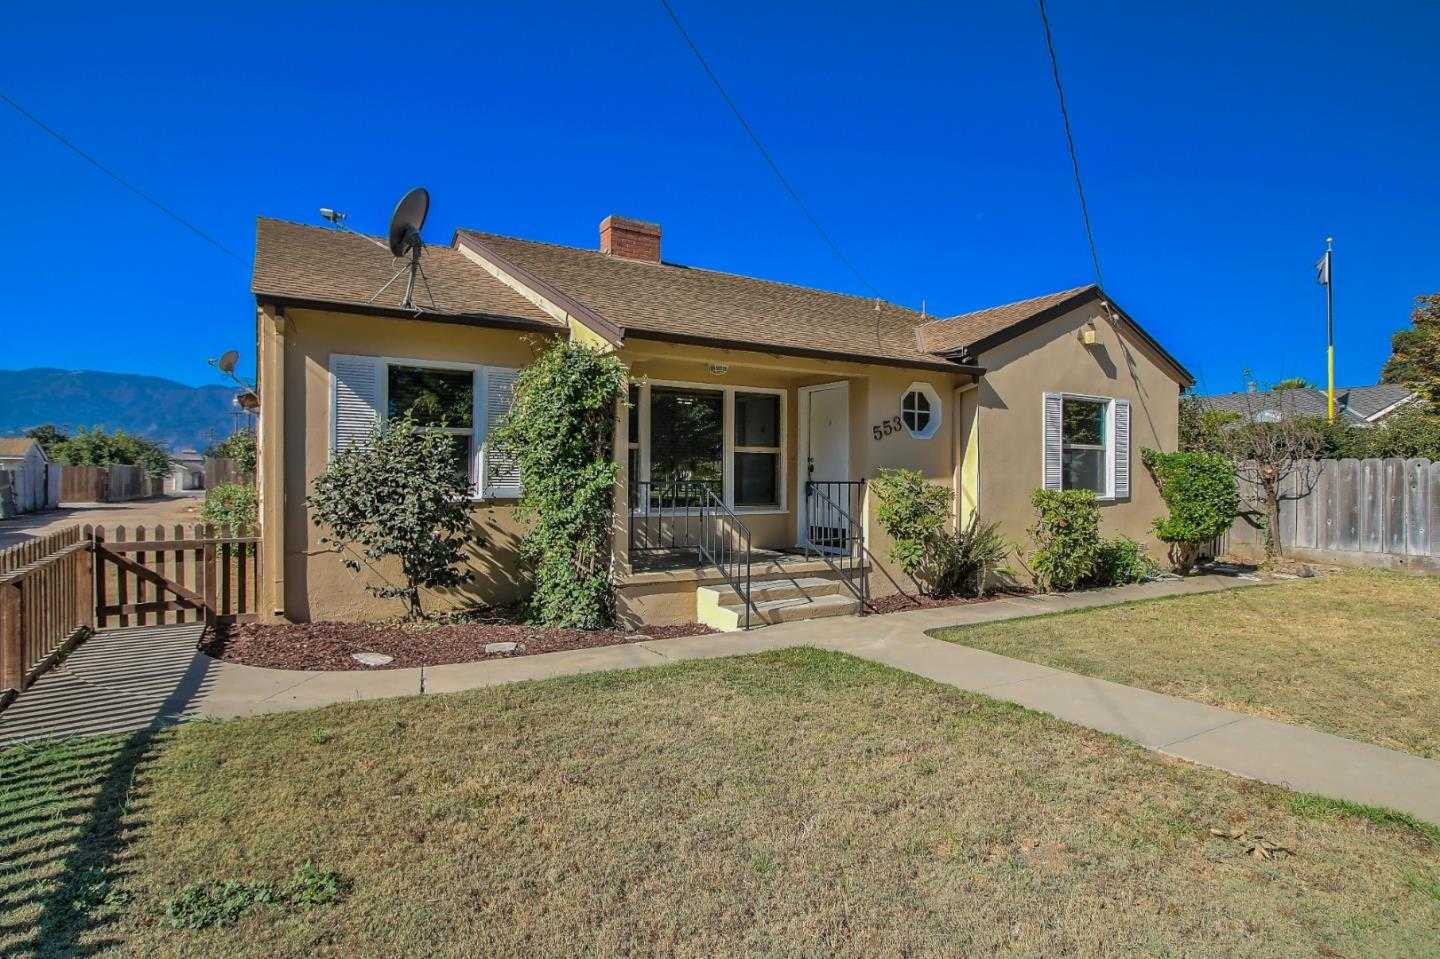 $495,000 - 3Br/1Ba -  for Sale in Gonzales